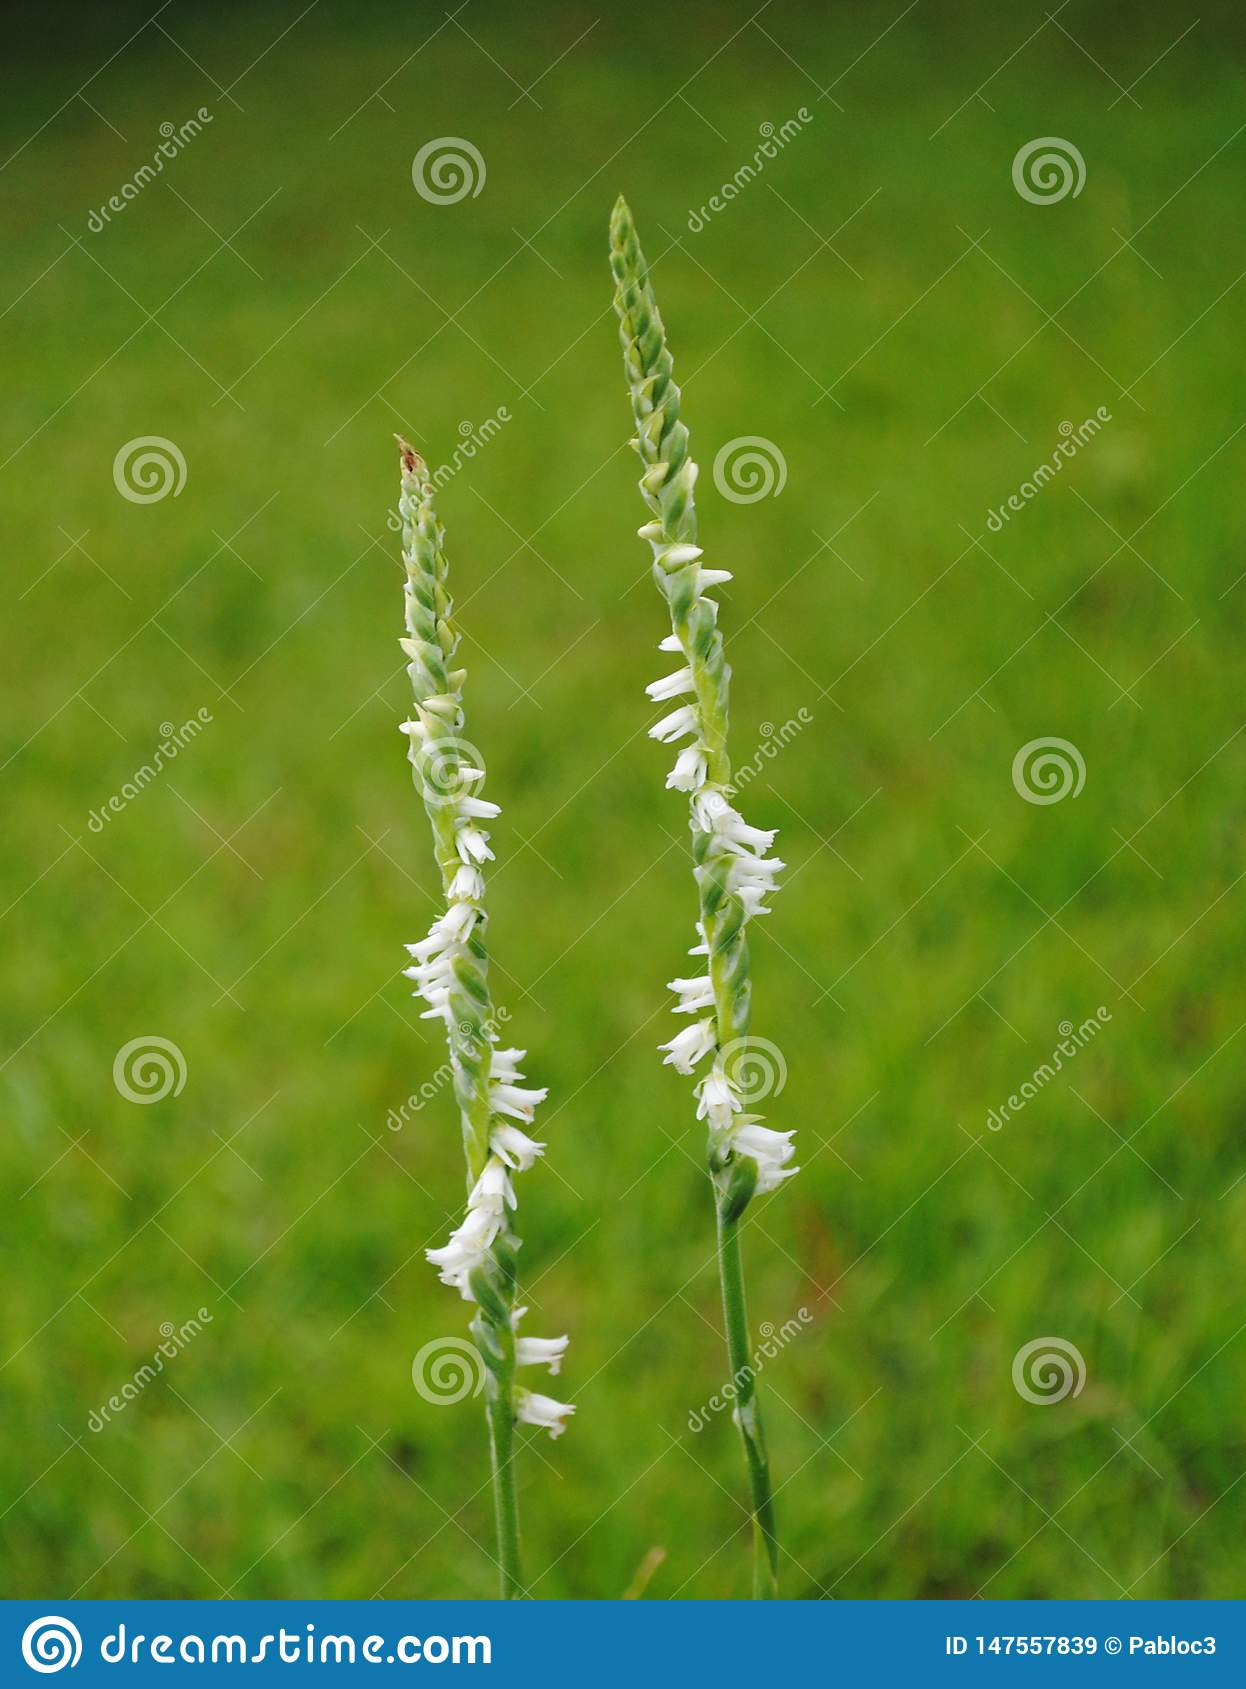 Twin Spiral Stalks with White Flowers